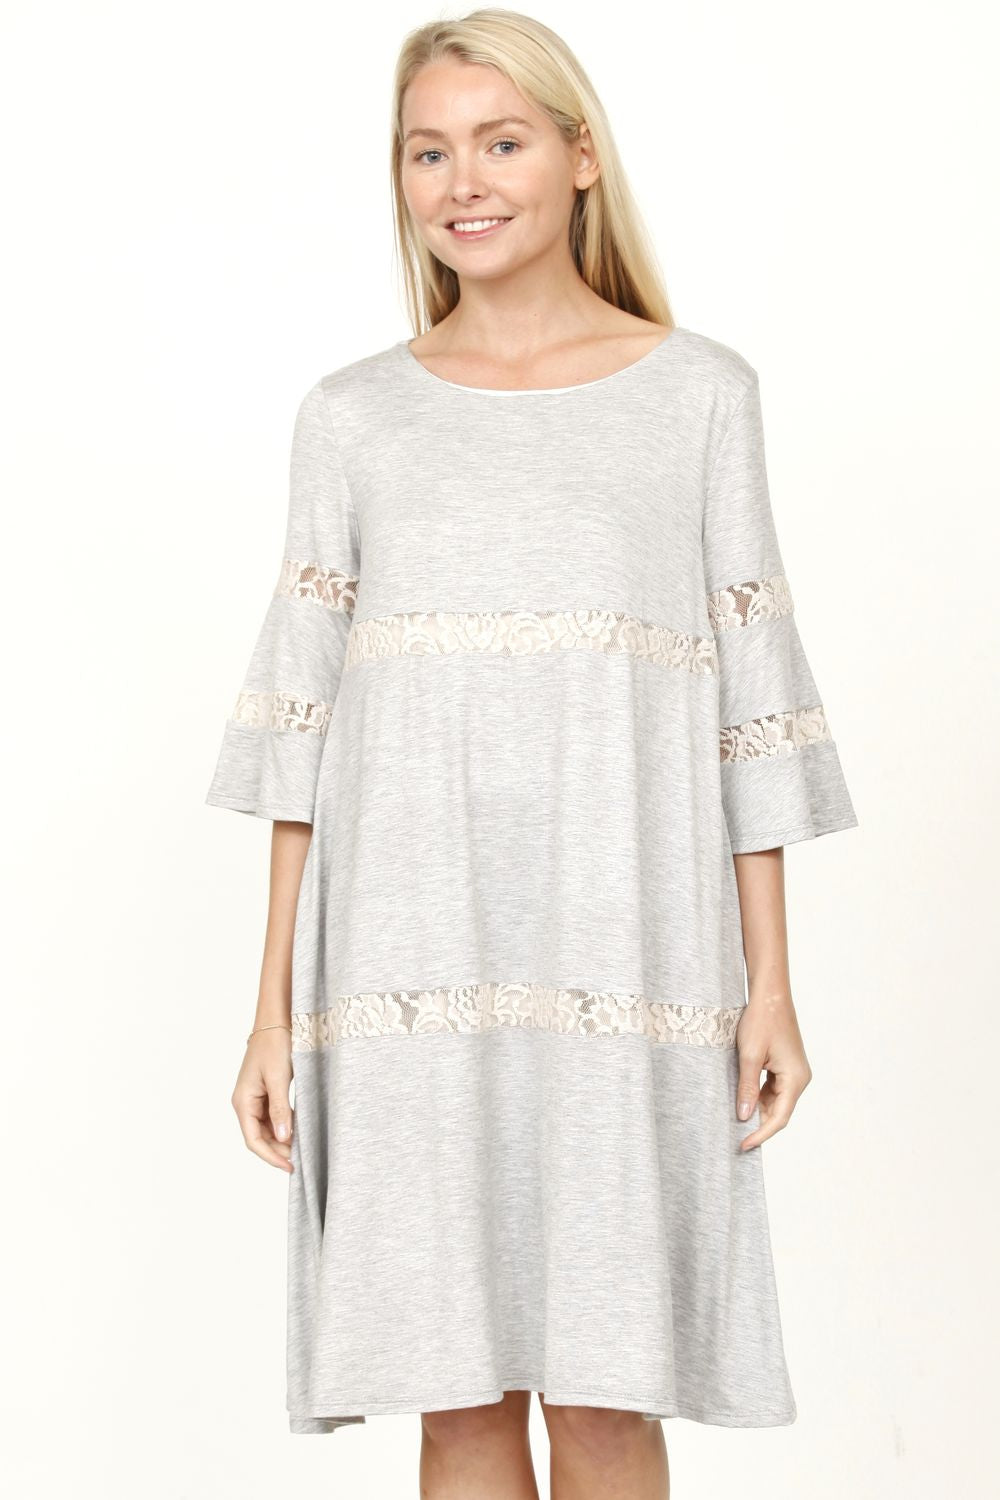 Grey & Cream Lace Tiered Ruffle Sleeve Swing Dress_Plus